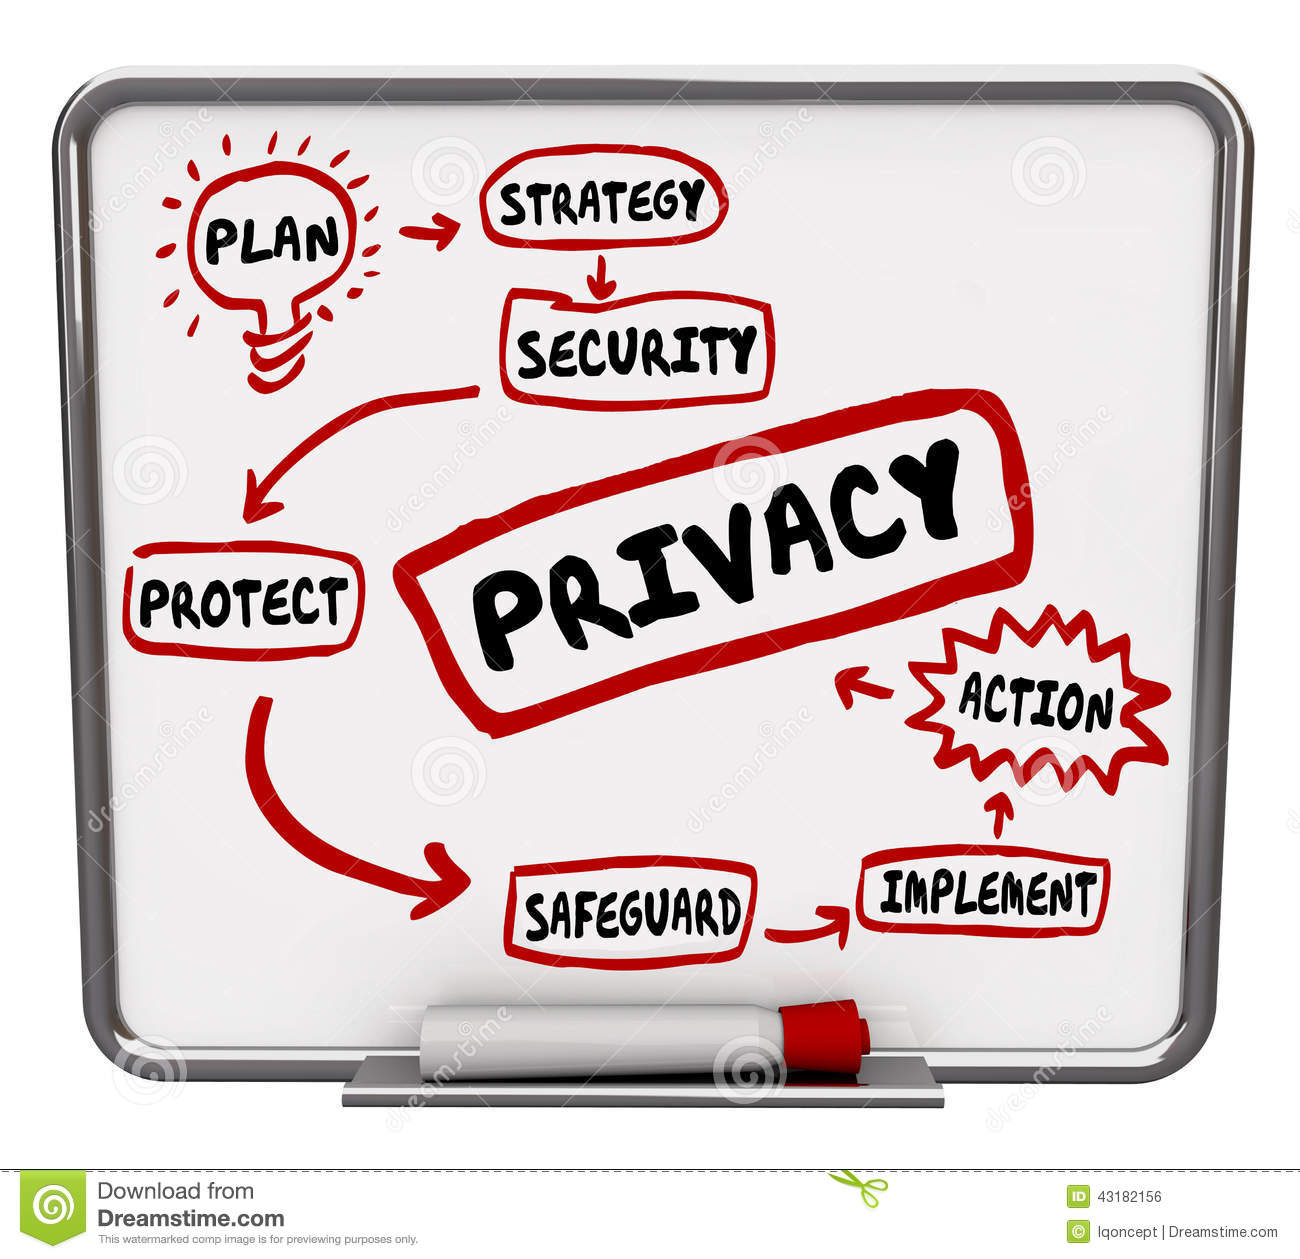 privacy safety security strategy flowchart diagram stock Privacy Fence Ideas Safety privacy safety security strategy flowchart diagram